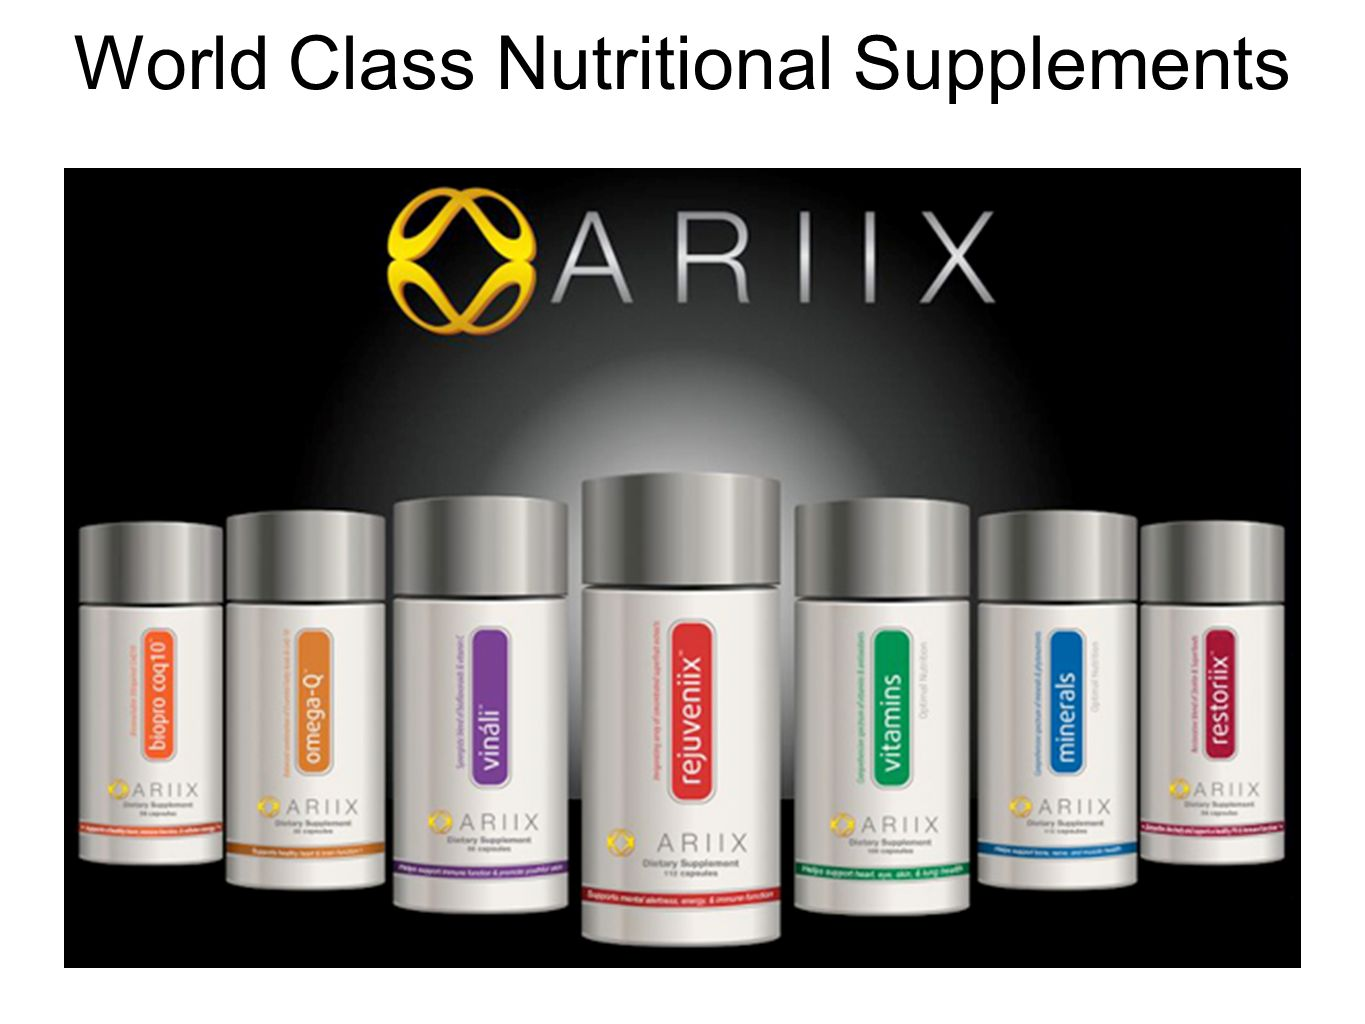 World Class Nutritional Supplements